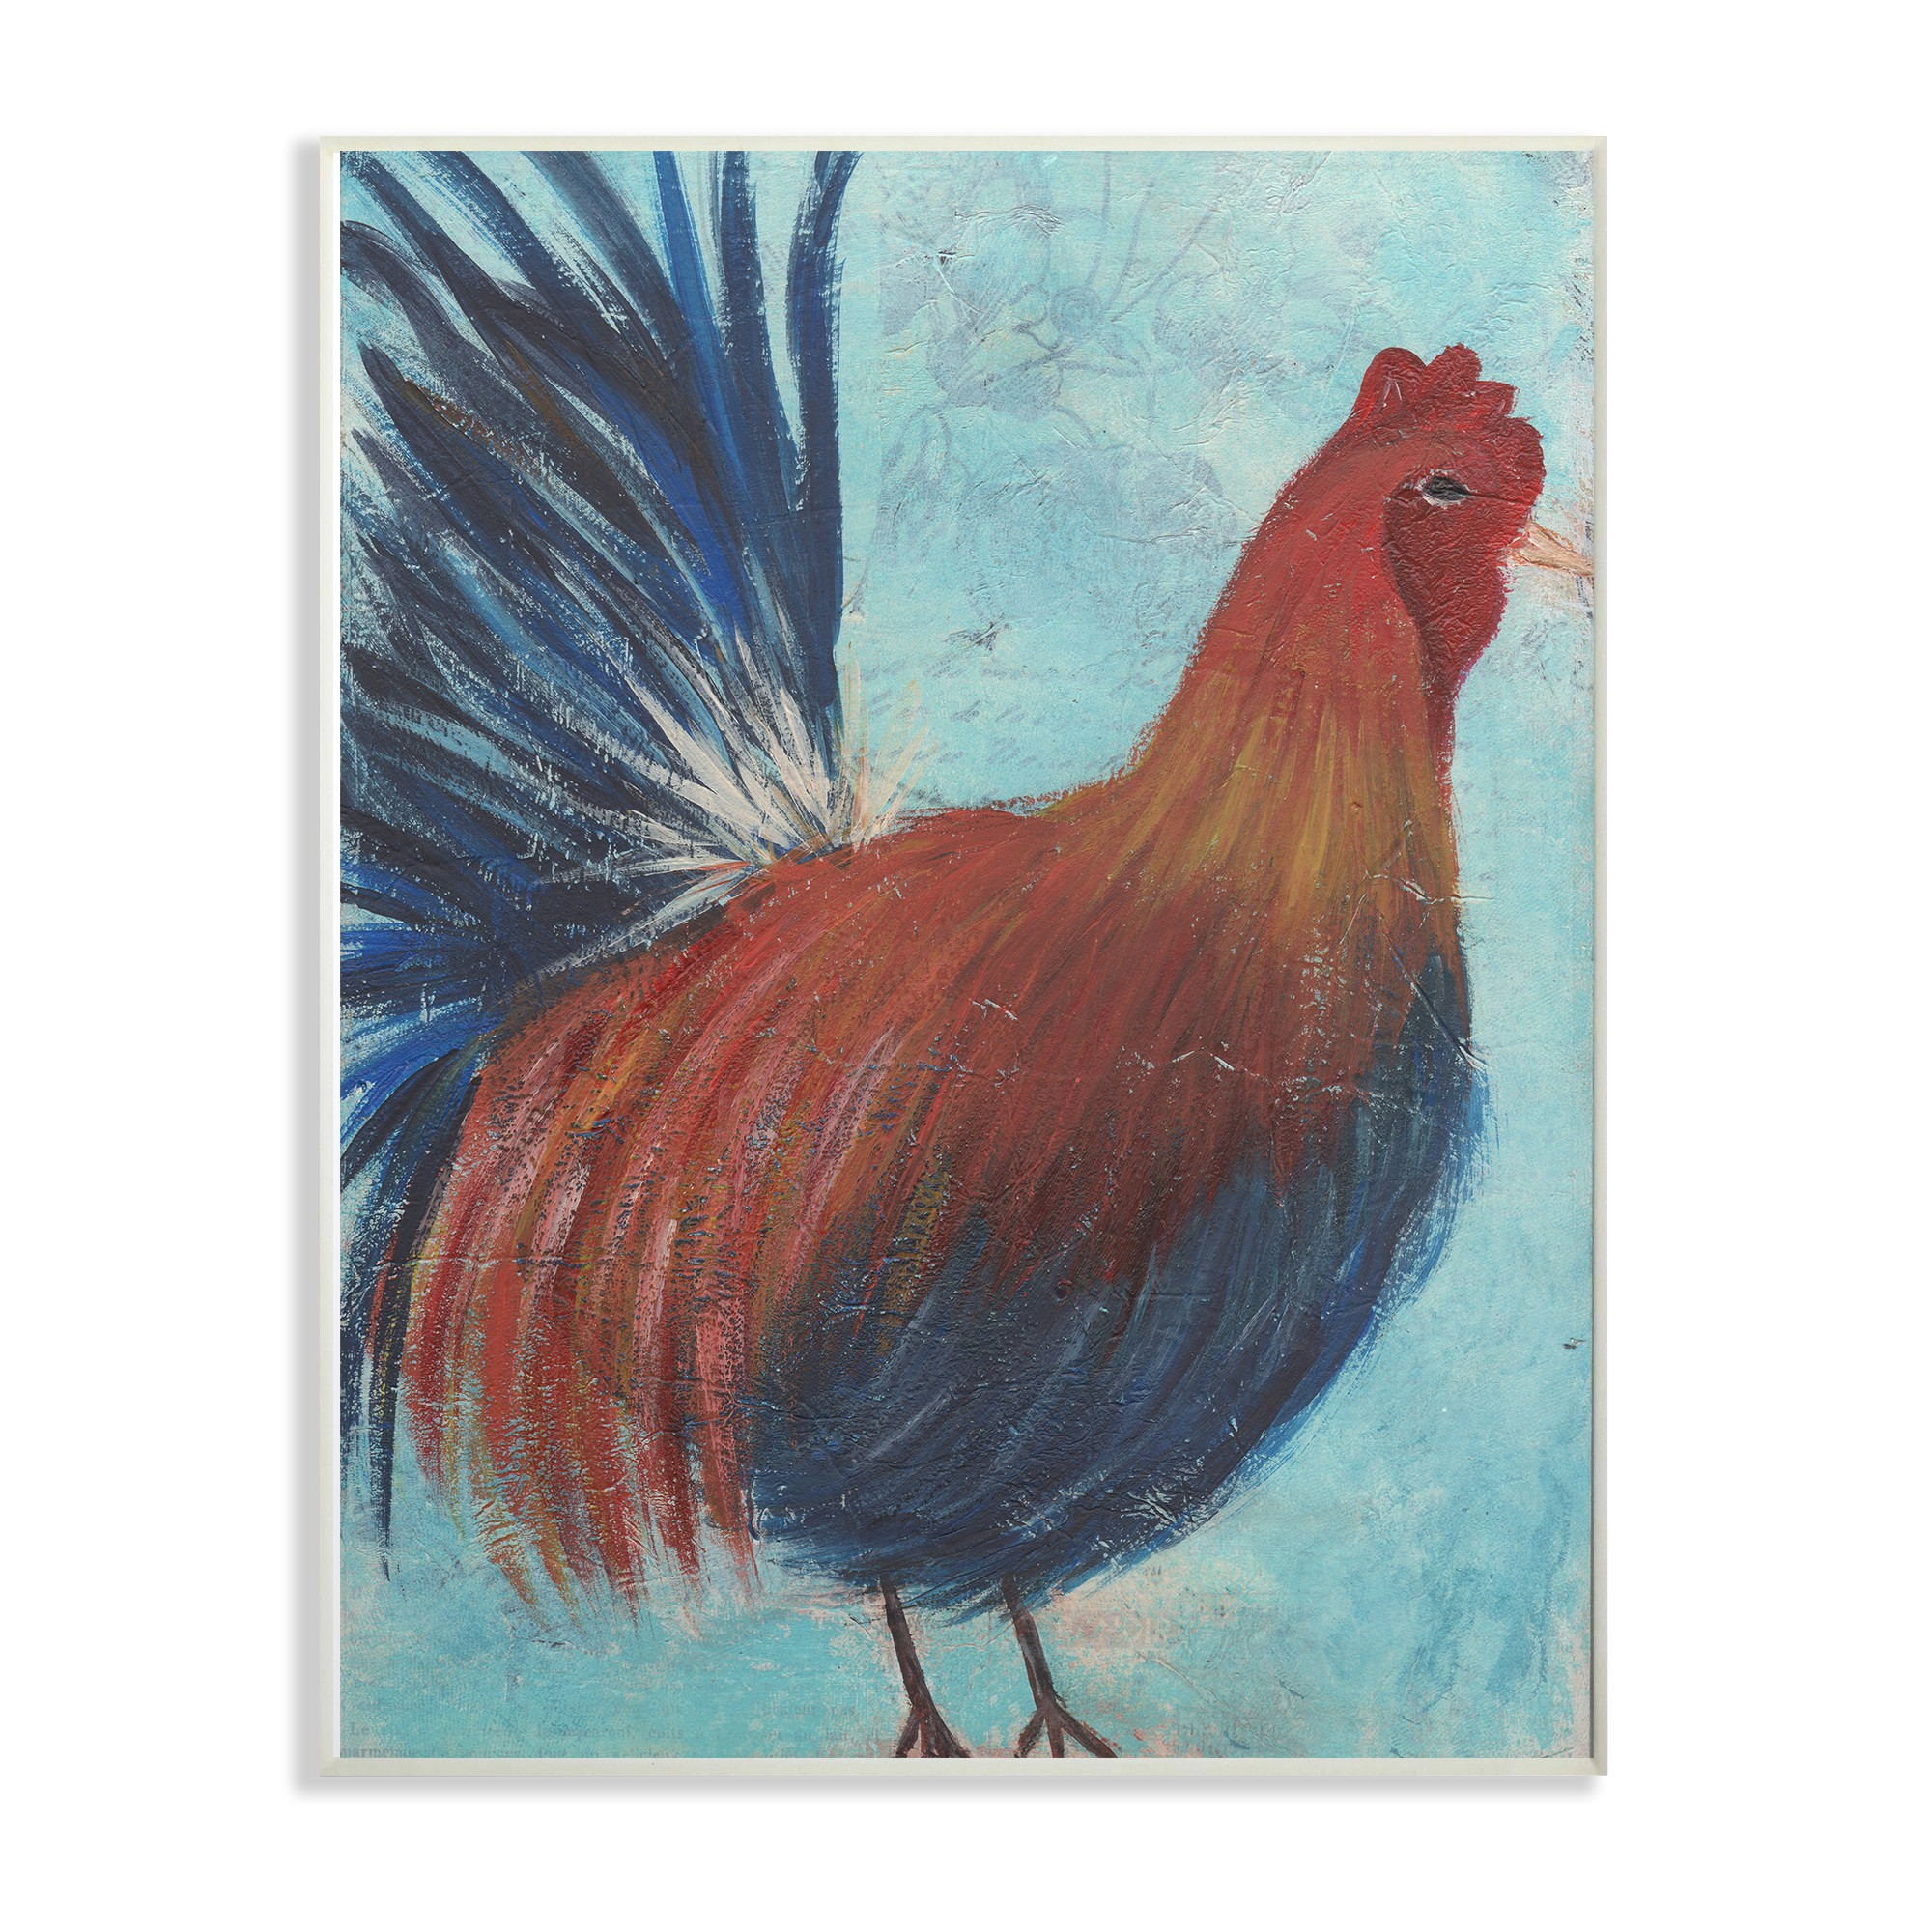 The Stupell Home Decor Collection Rooster Painting Distressed Surface Oversized Wall Plaque Art, 13 x 0.5 x 19